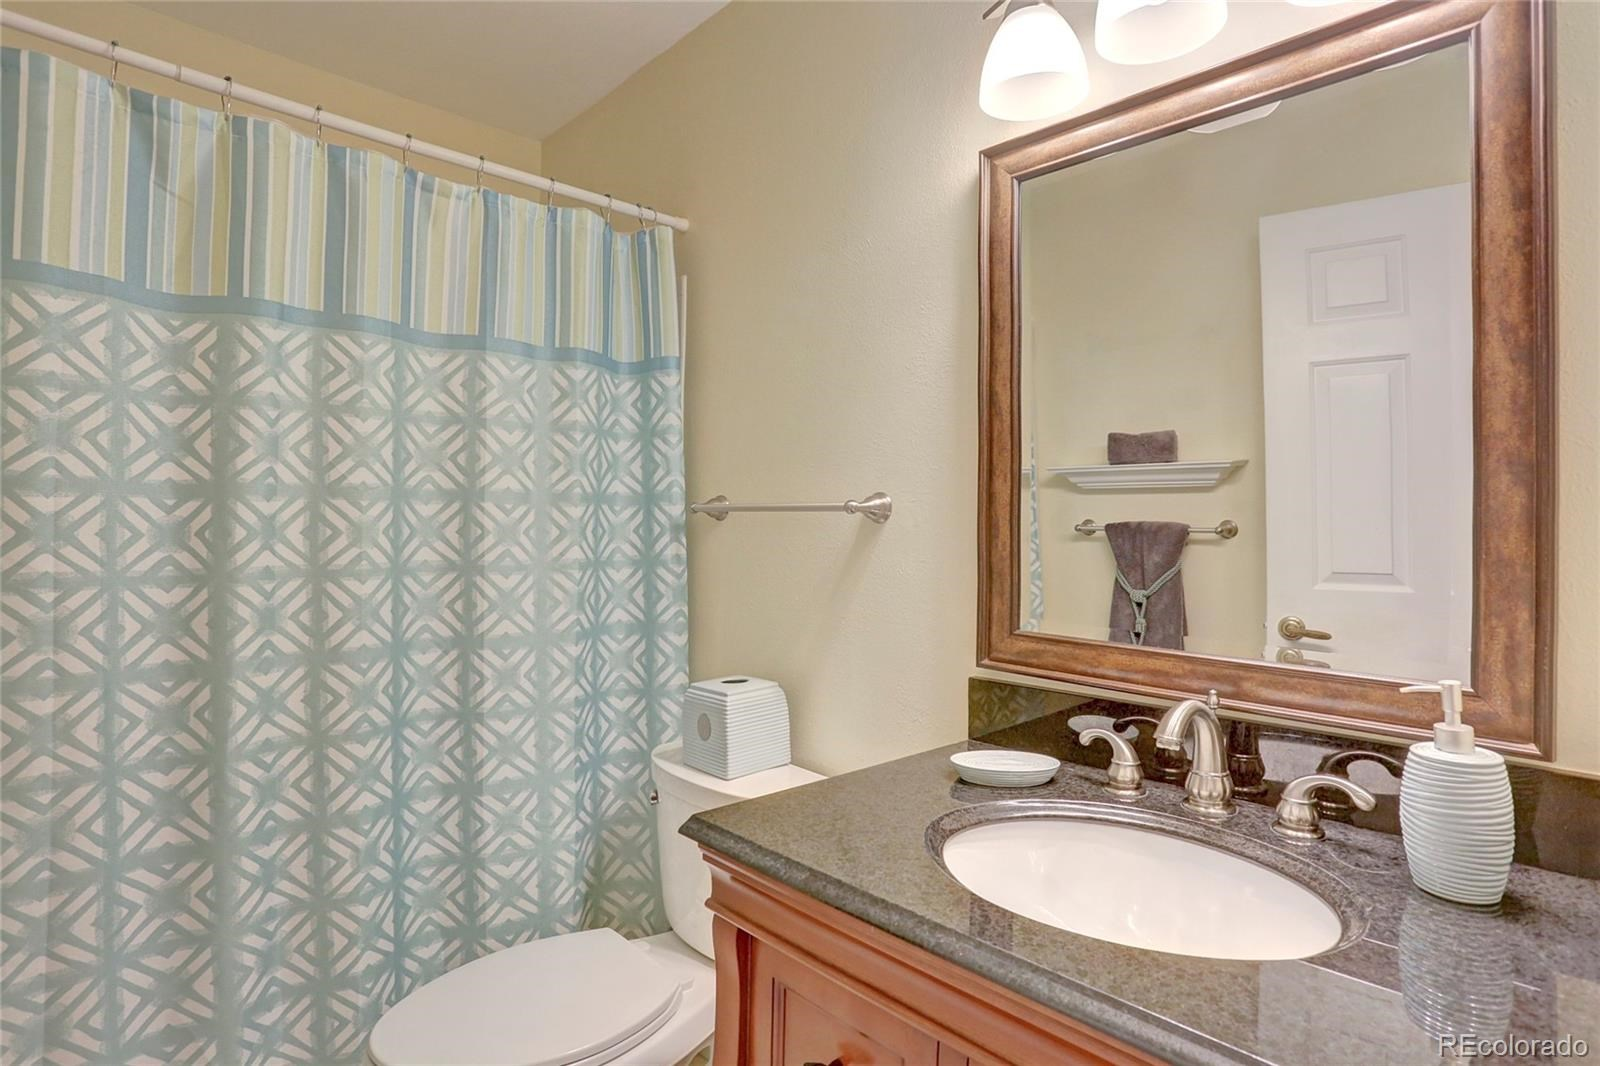 MLS# 2931590 - 10 - 2814 S Heather Gardens Way #A, Aurora, CO 80014